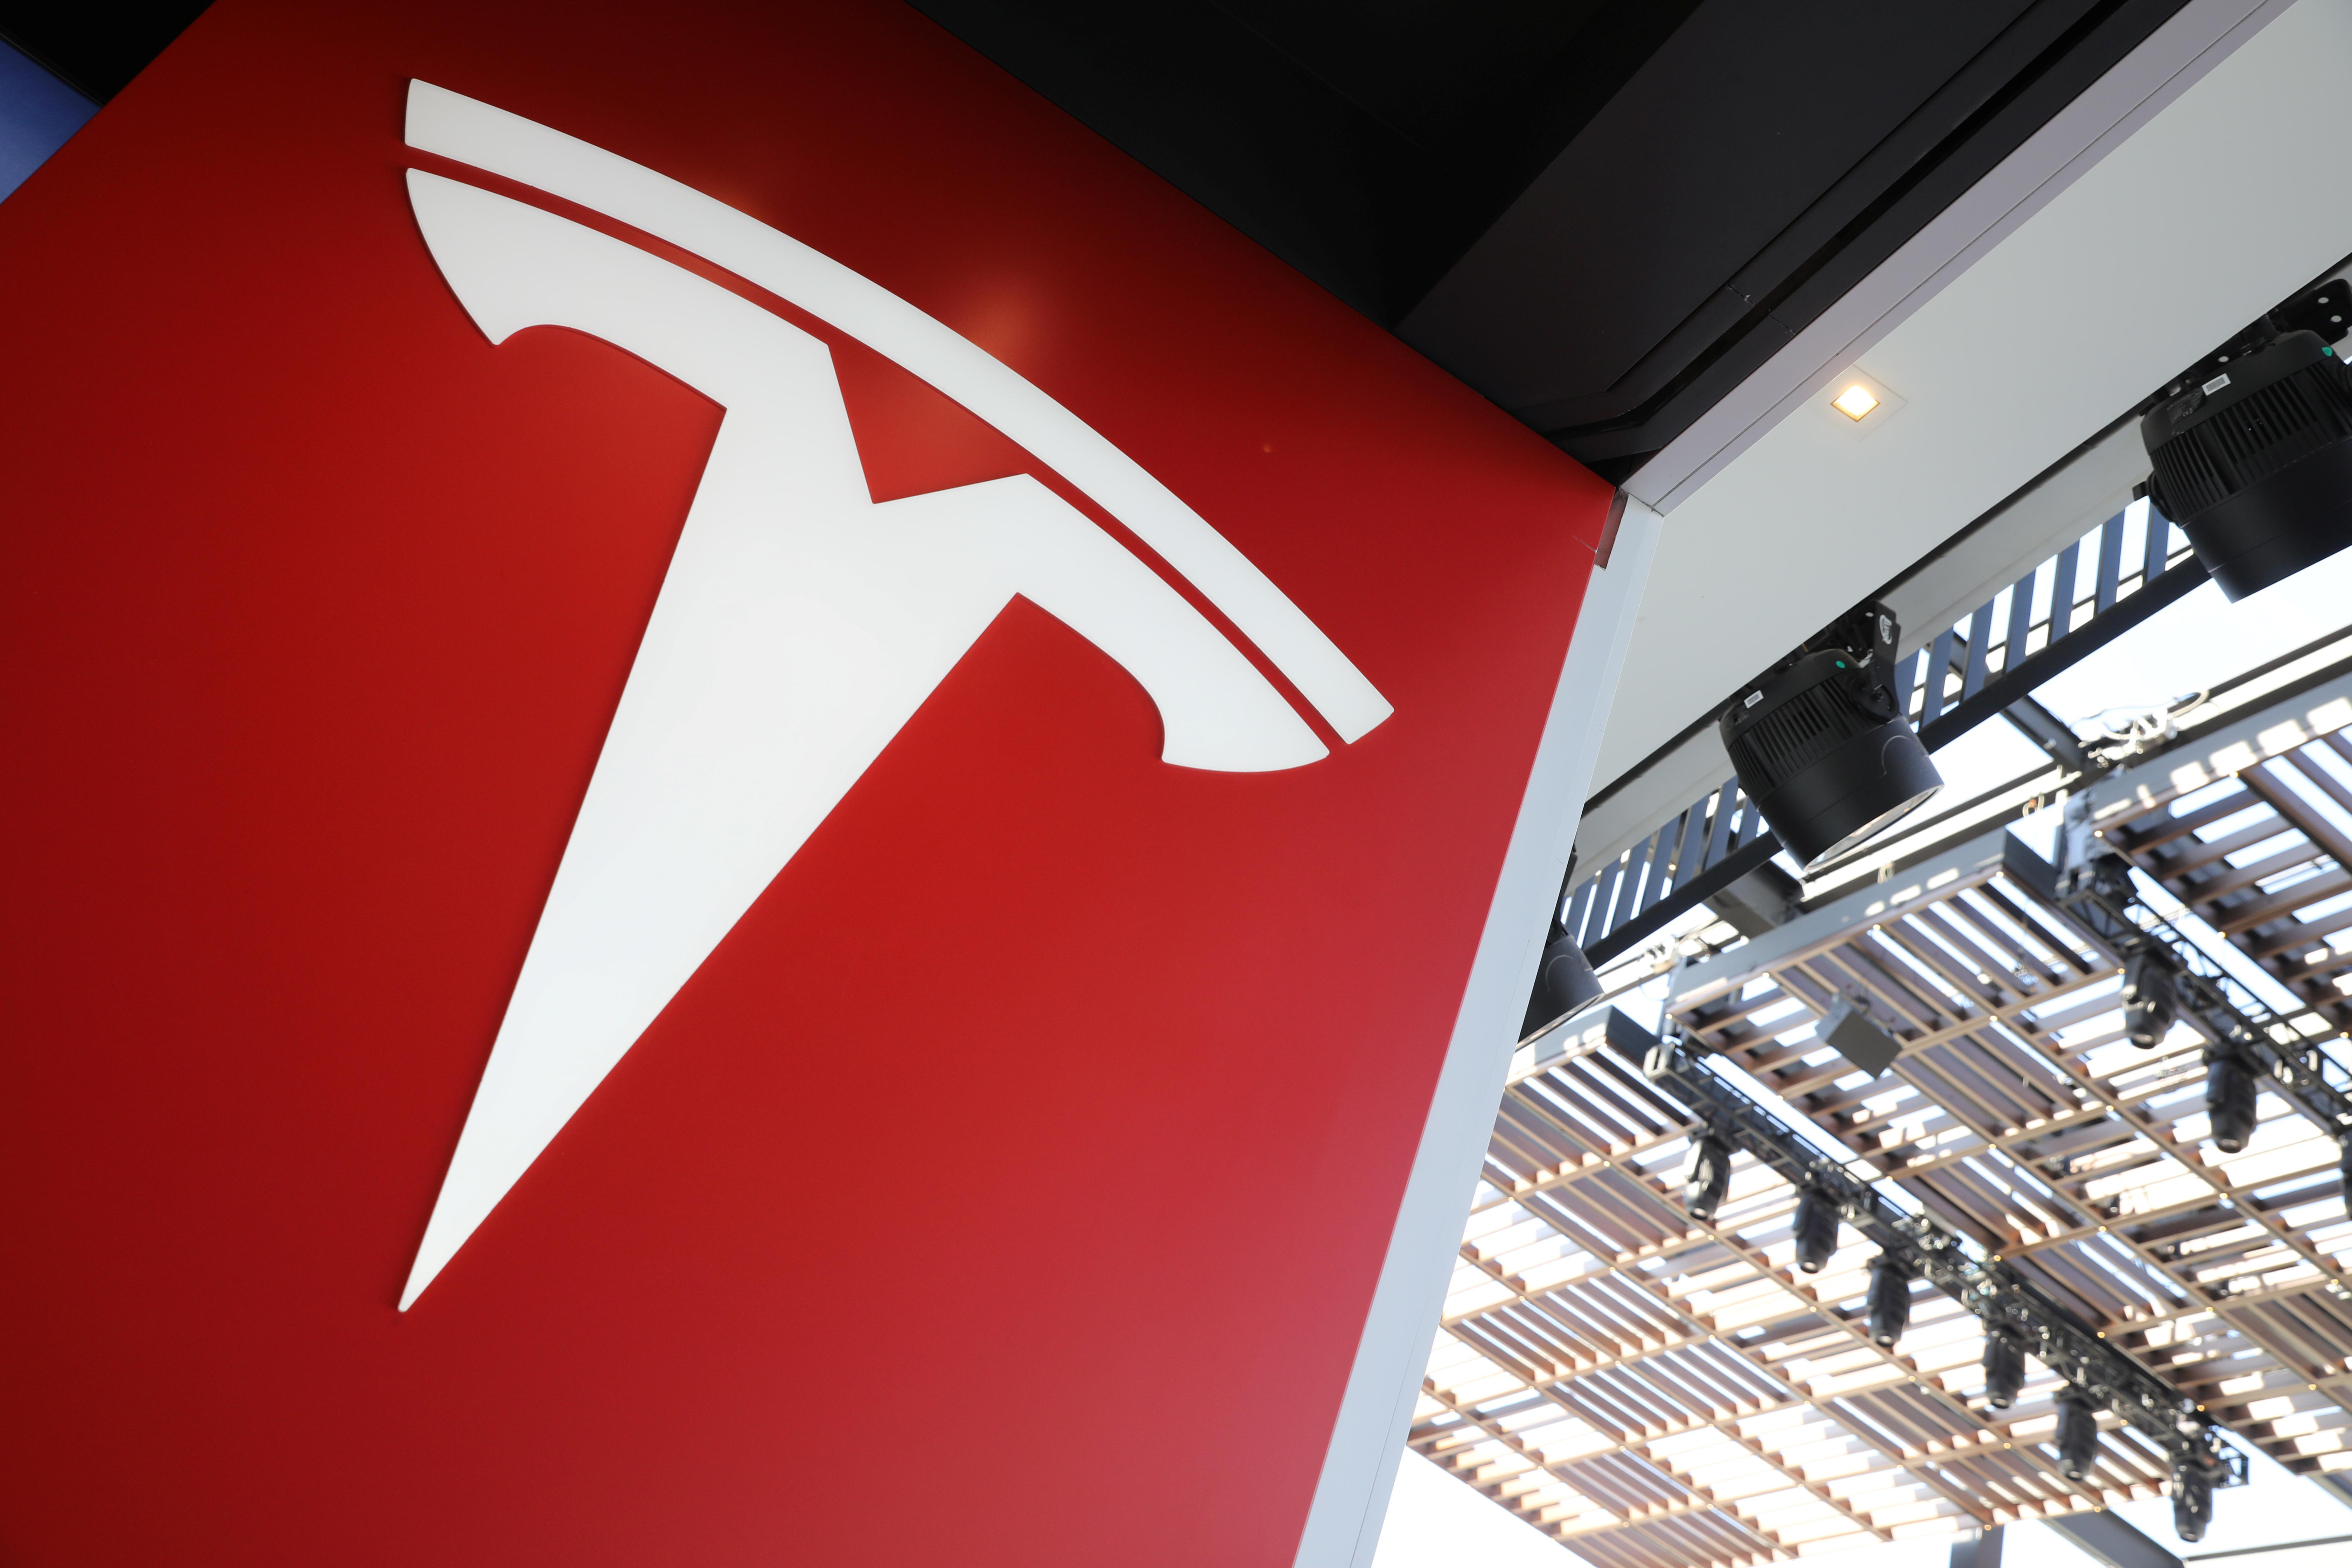 Tesla's store-shuttering strategy may pull the rug out of solar